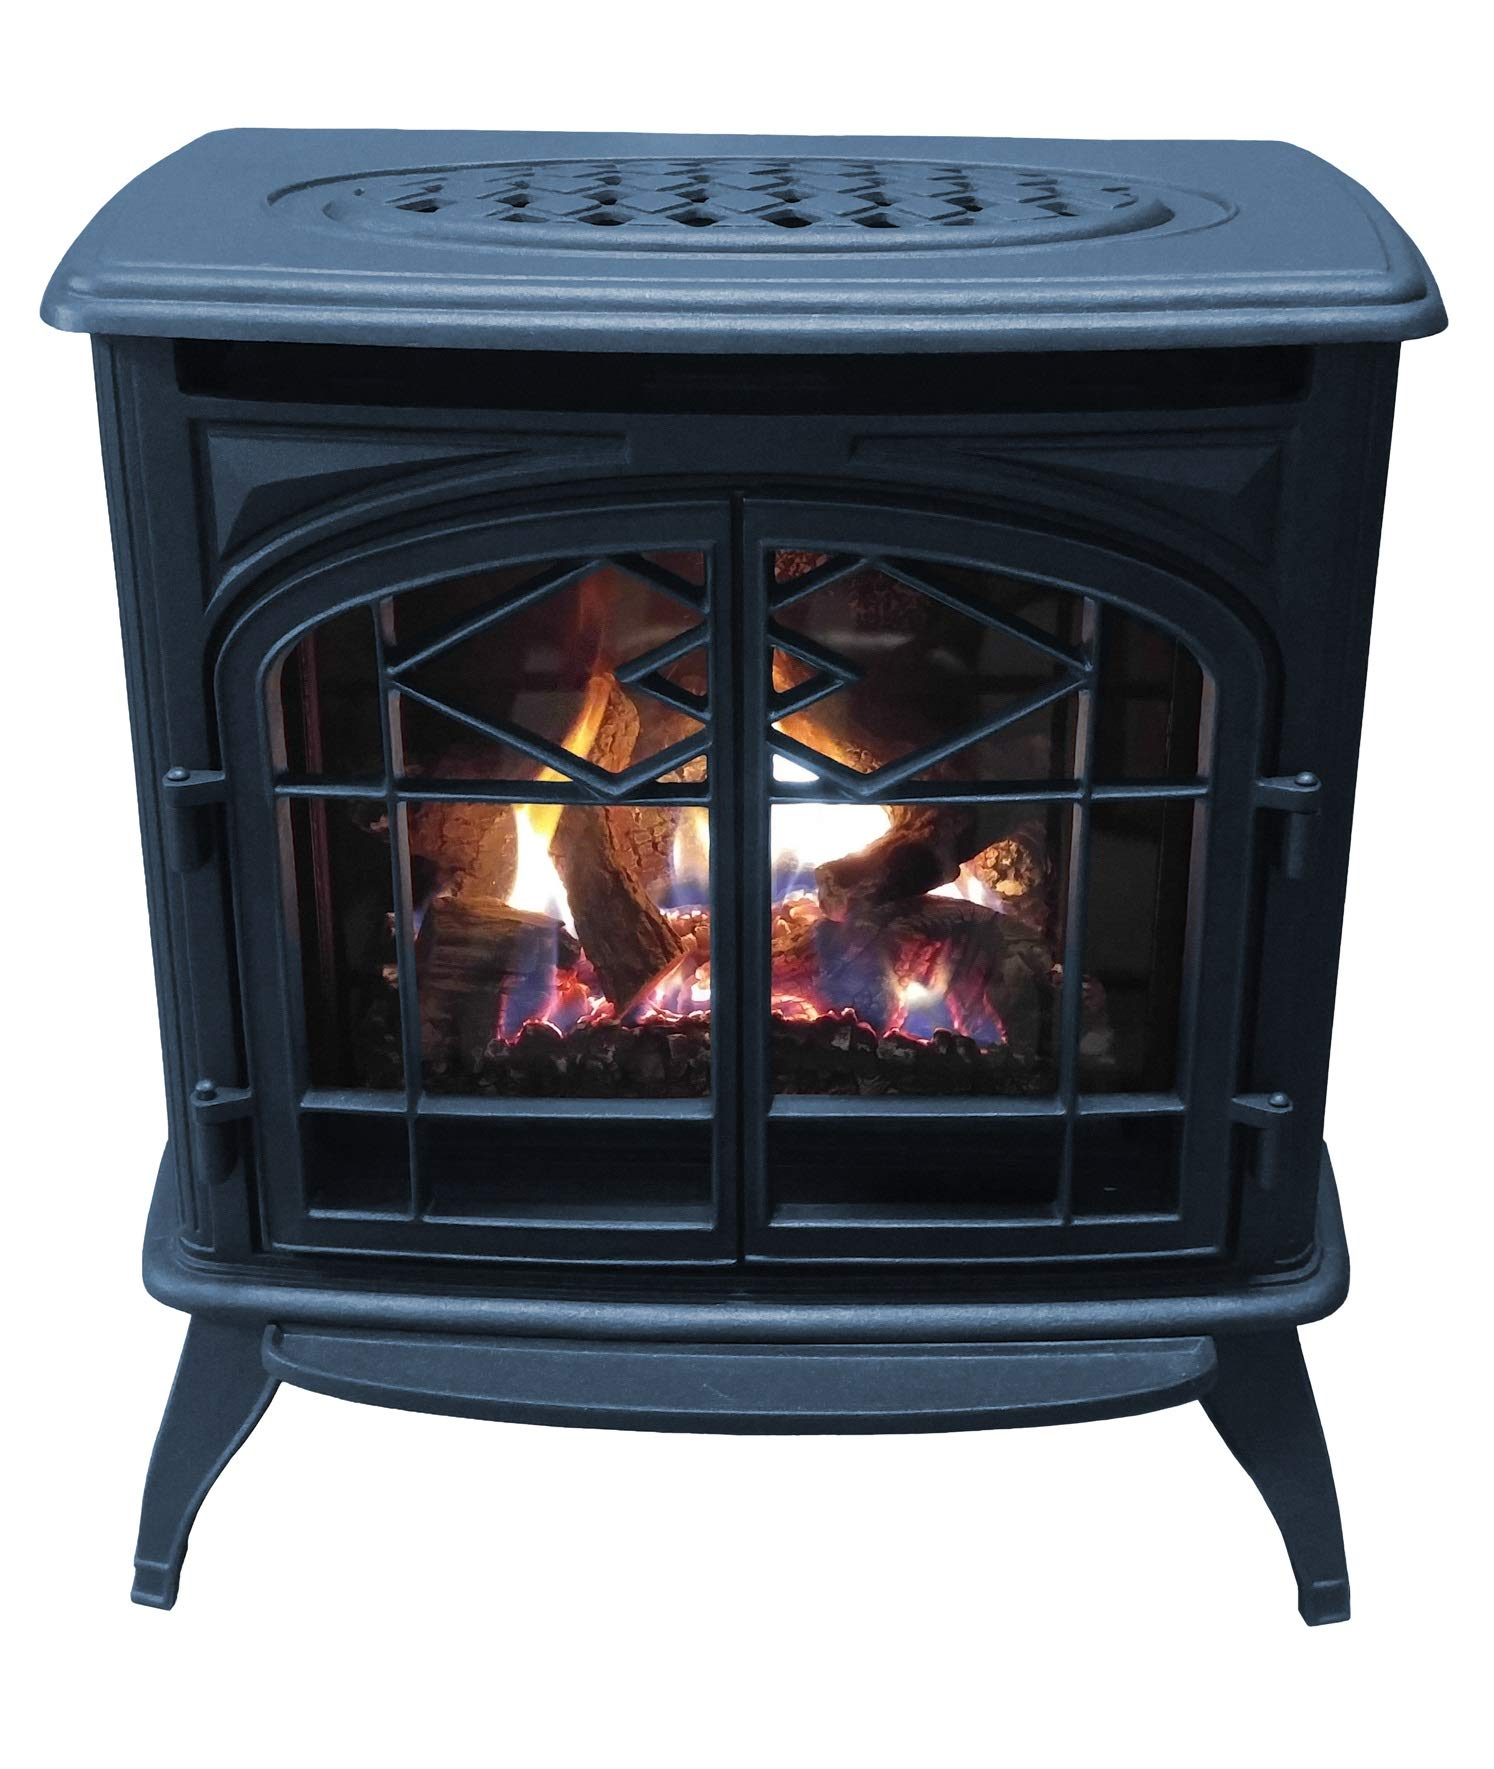 Thelin Echo Direct Vent (NG) Natural Gas or (LP) Propane Heater - Cast Iron Painted in Metallic Blue by Thelin Echo DV Gas